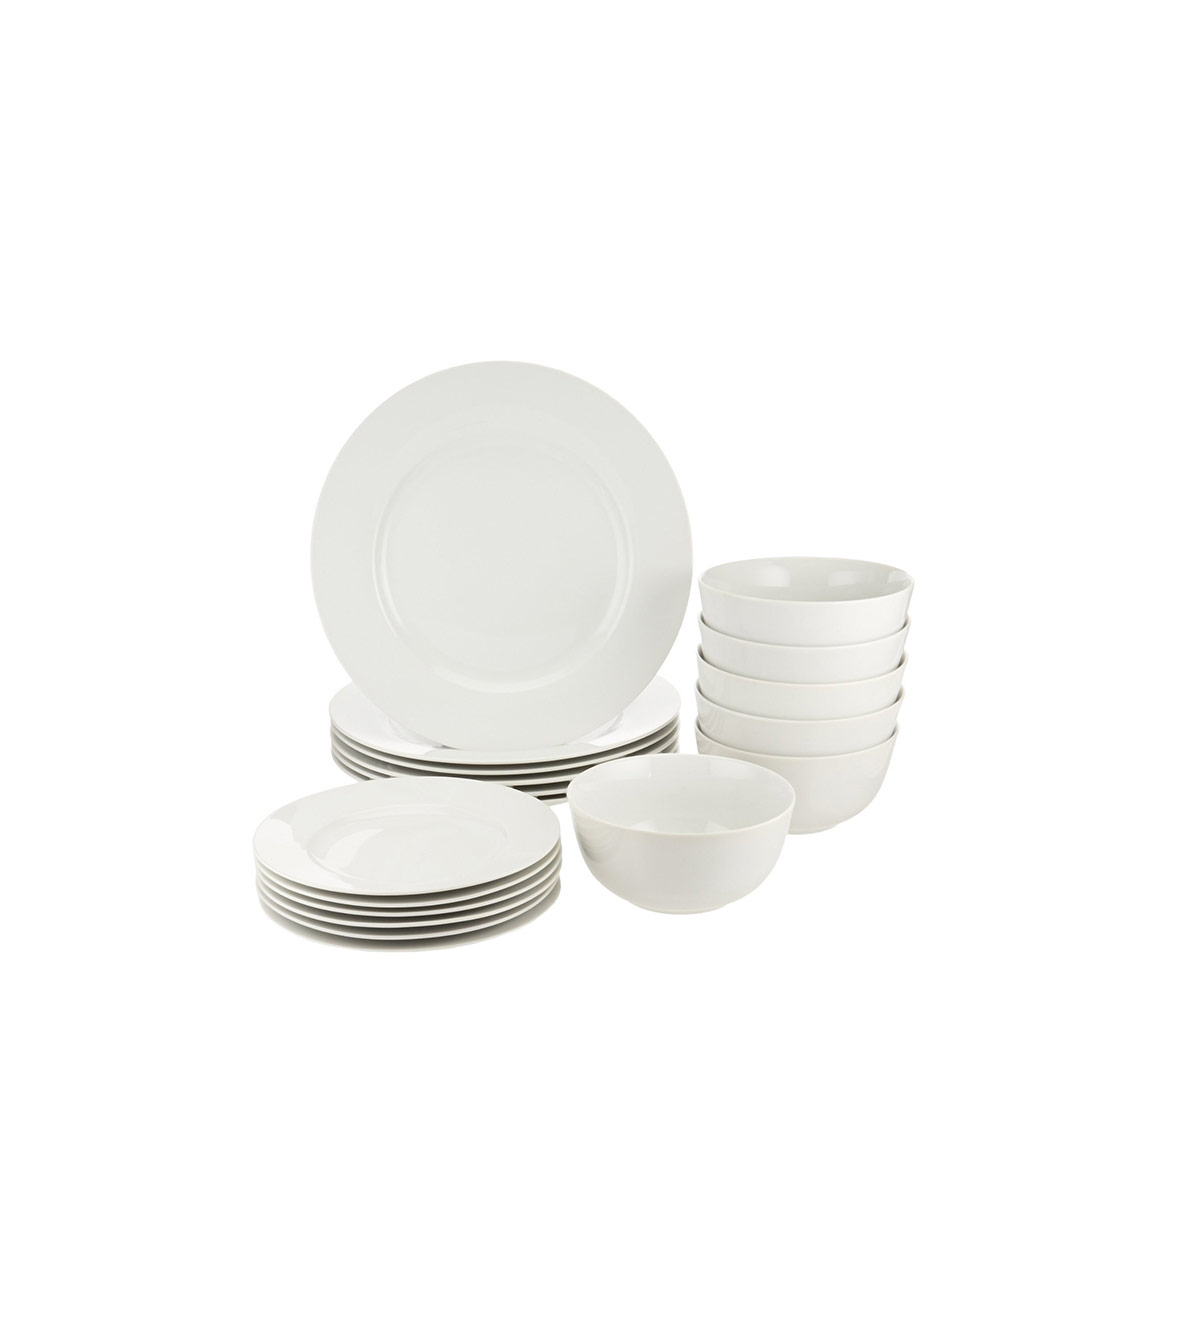 AmazonBasics 18-Piece Dinnerware Set  sc 1 st  Real Simple & 20 Insanely Great Wedding Gifts With a Cult Following on Amazon ...